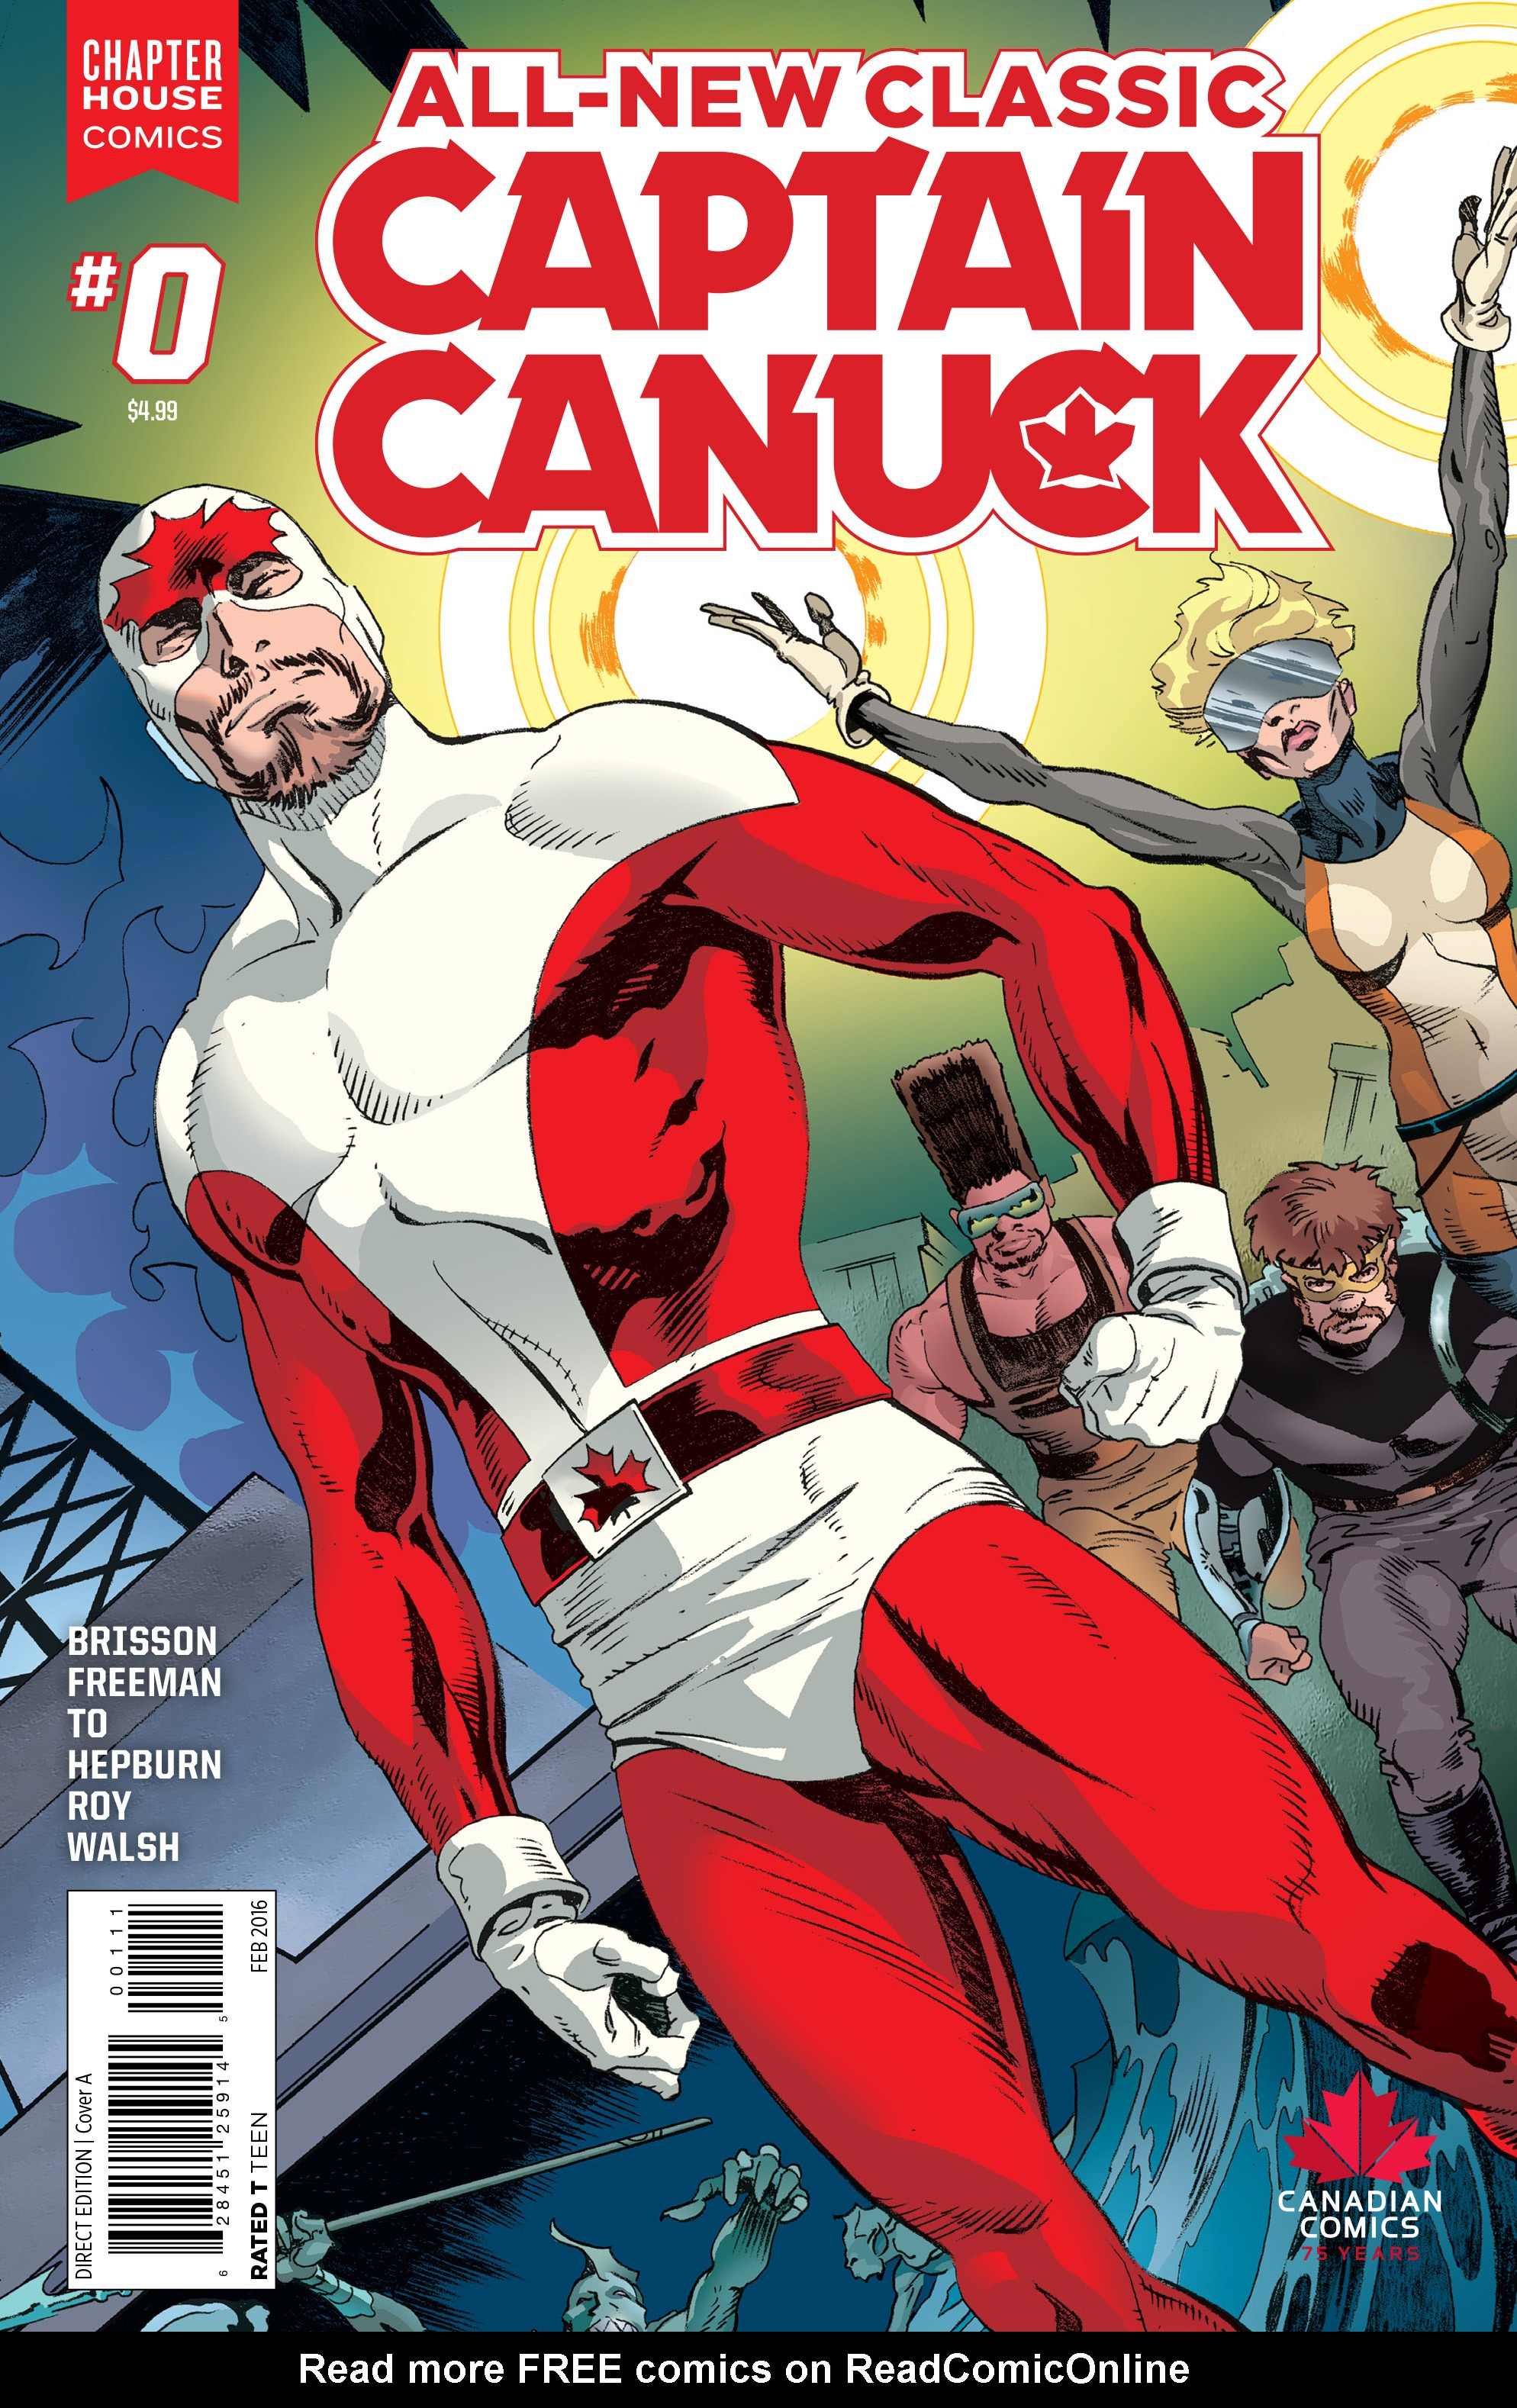 All-New Classic Captain Canuck 0 Page 1